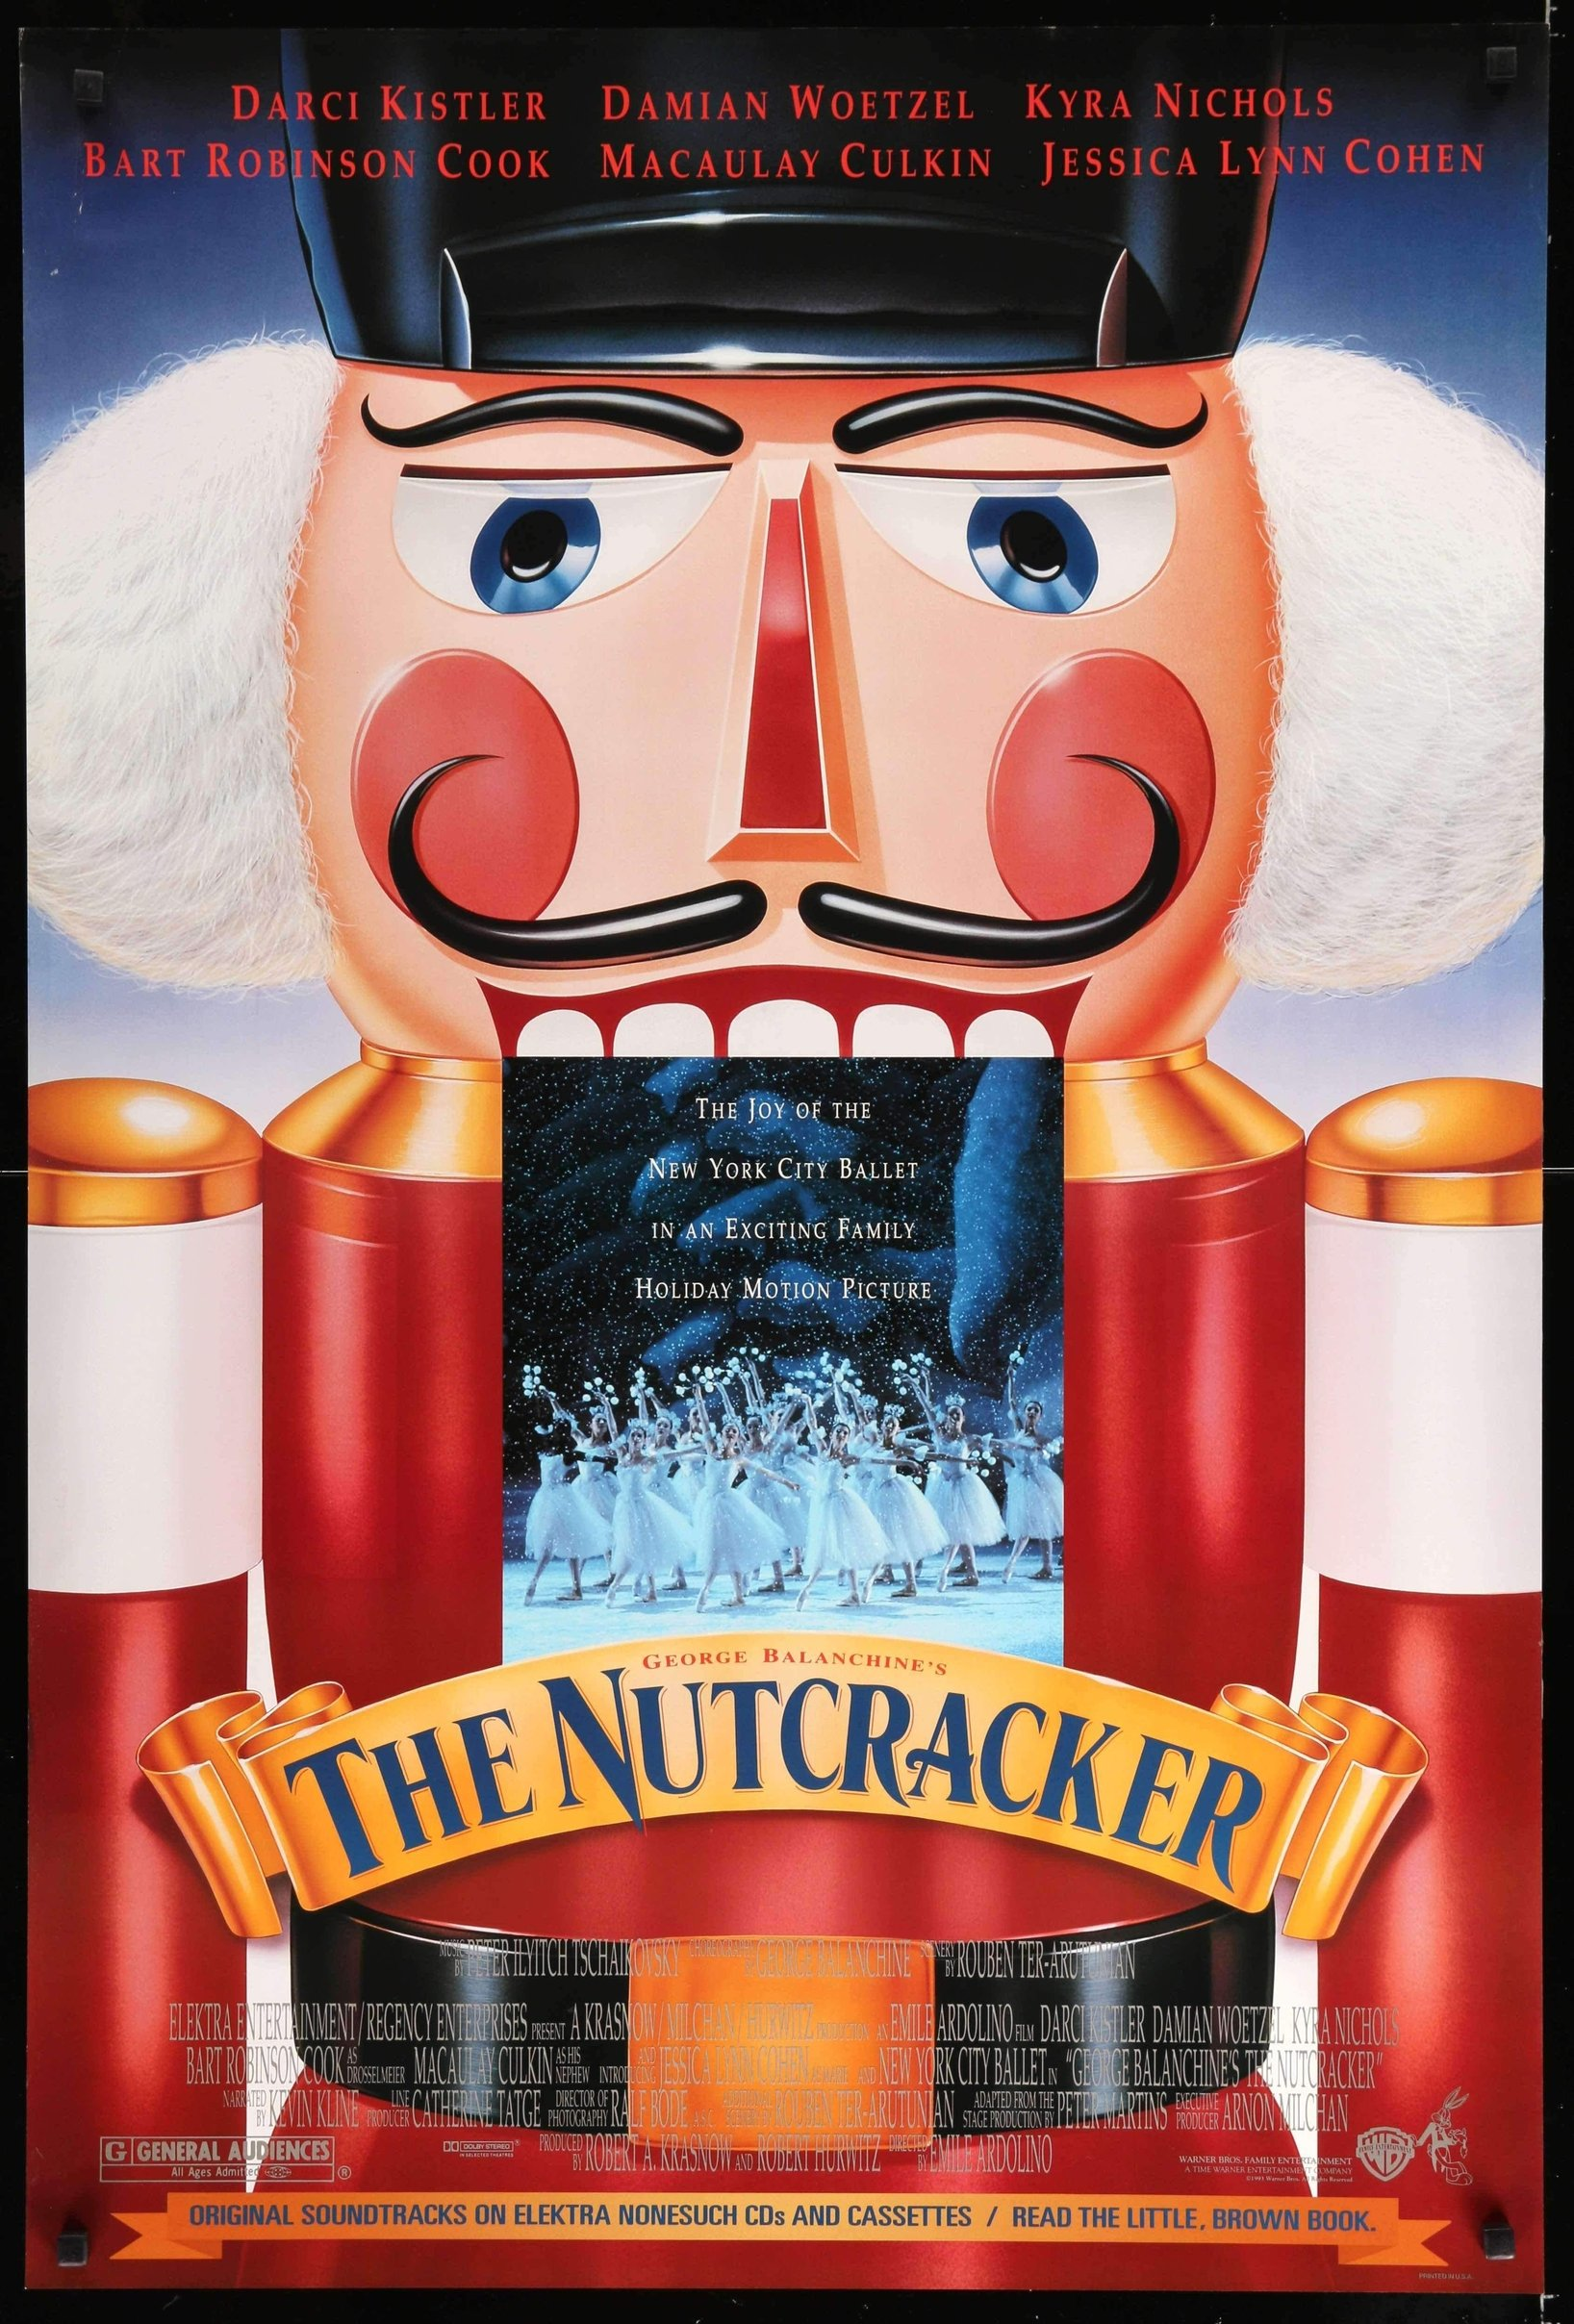 (1993) On Christmas Eve, a little girl named Marie falls asleep after a party at her home and dreams herself (or does she?) into a fantastic world where toys become larger than life. Her beloved Nutcracker comes to life and defends her from the Mouse King, then is turned into a Prince after Marie saves his life. -